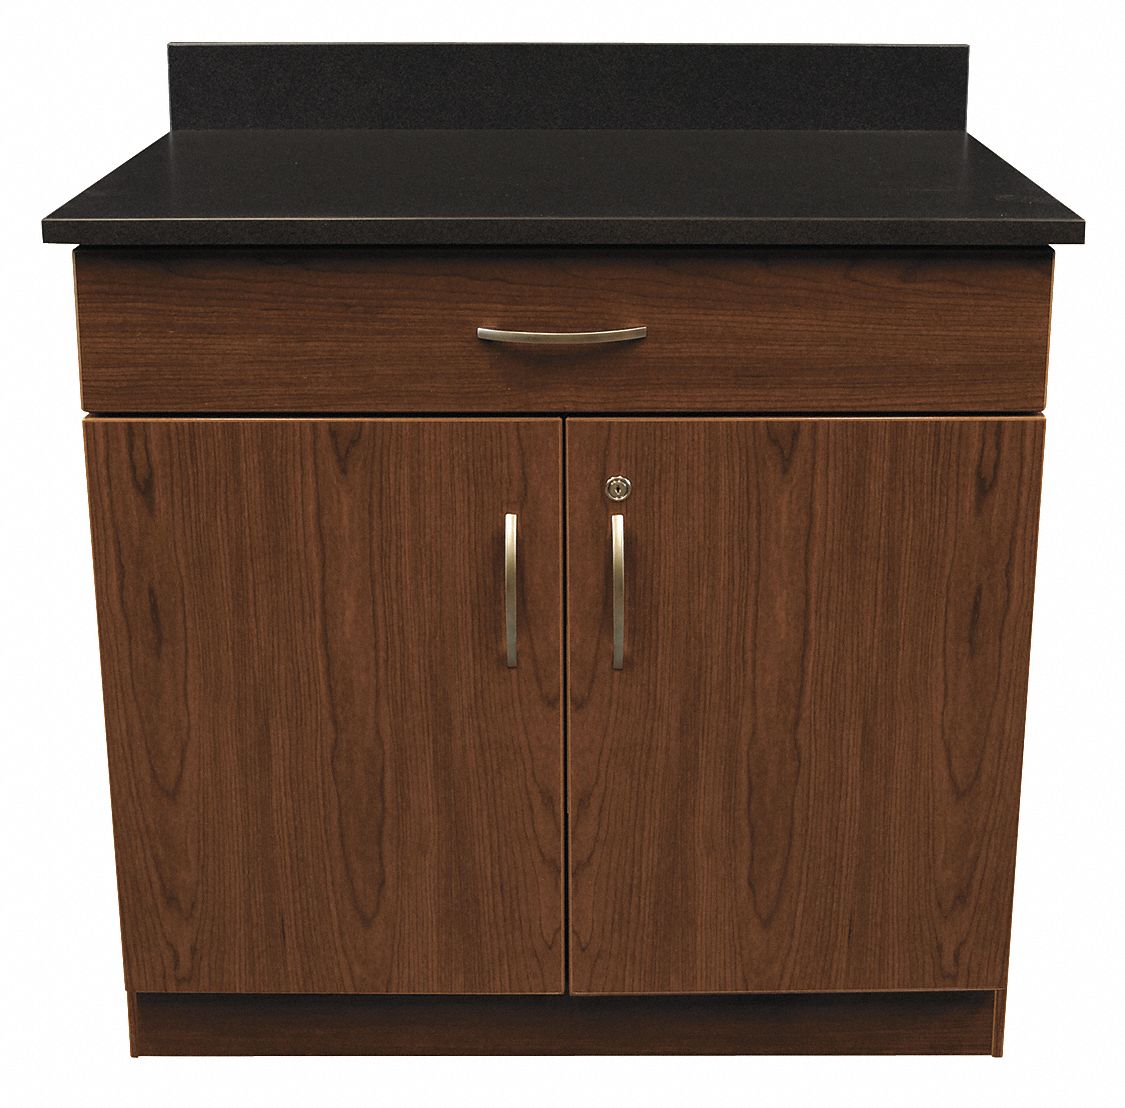 Breakroom Appliance Cabinets